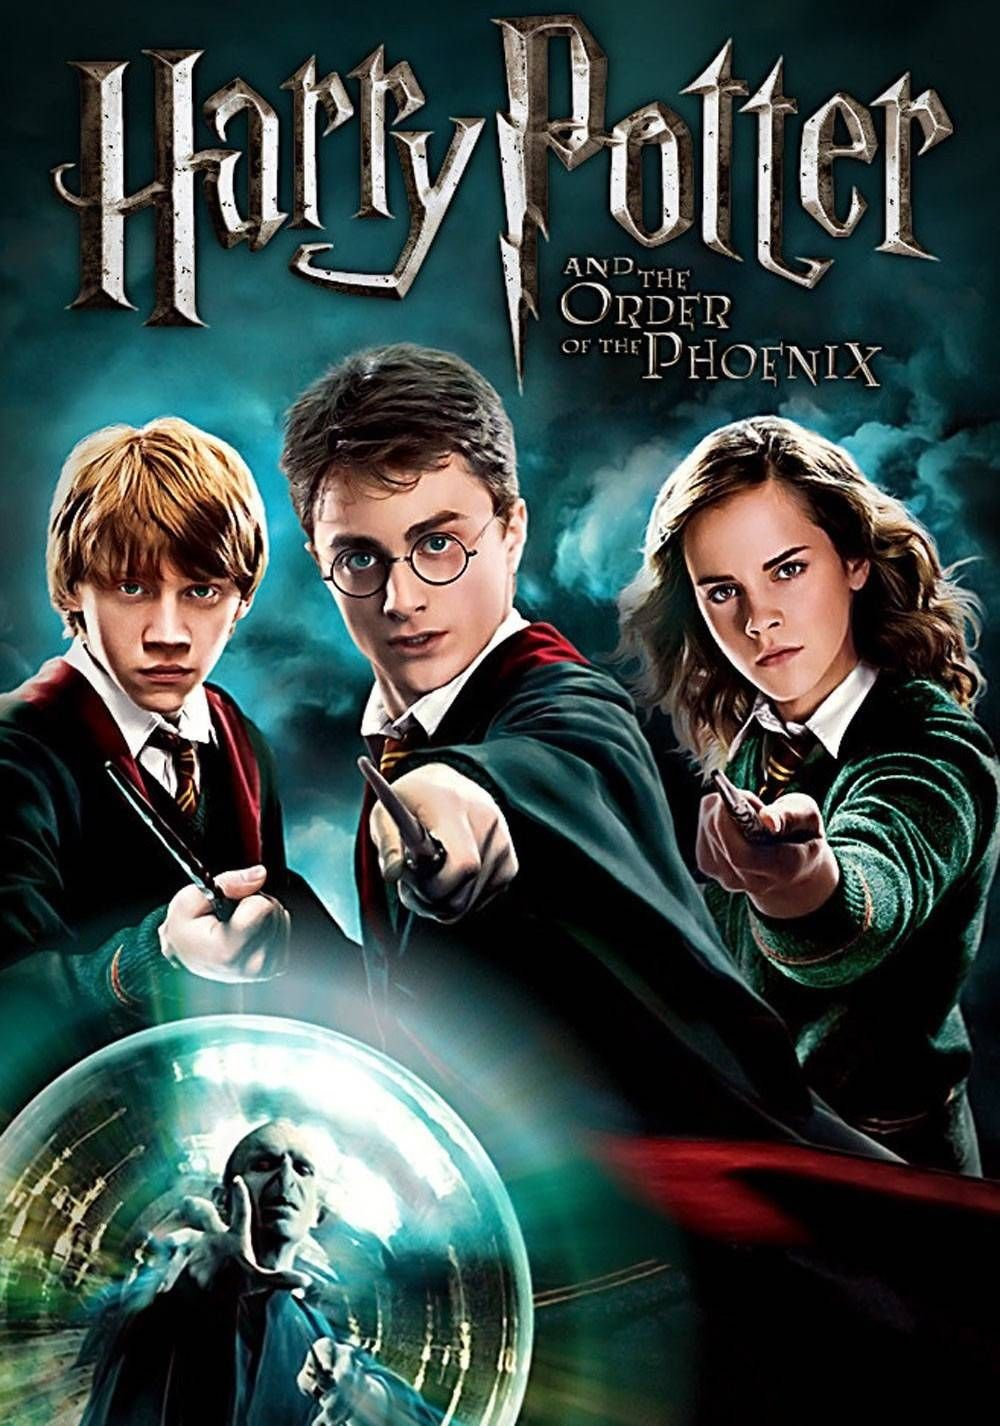 Harry Potter And The Order Of The Phoenix 2007 Harry Potter Order Harry Potter 5 Harry Potter Movies